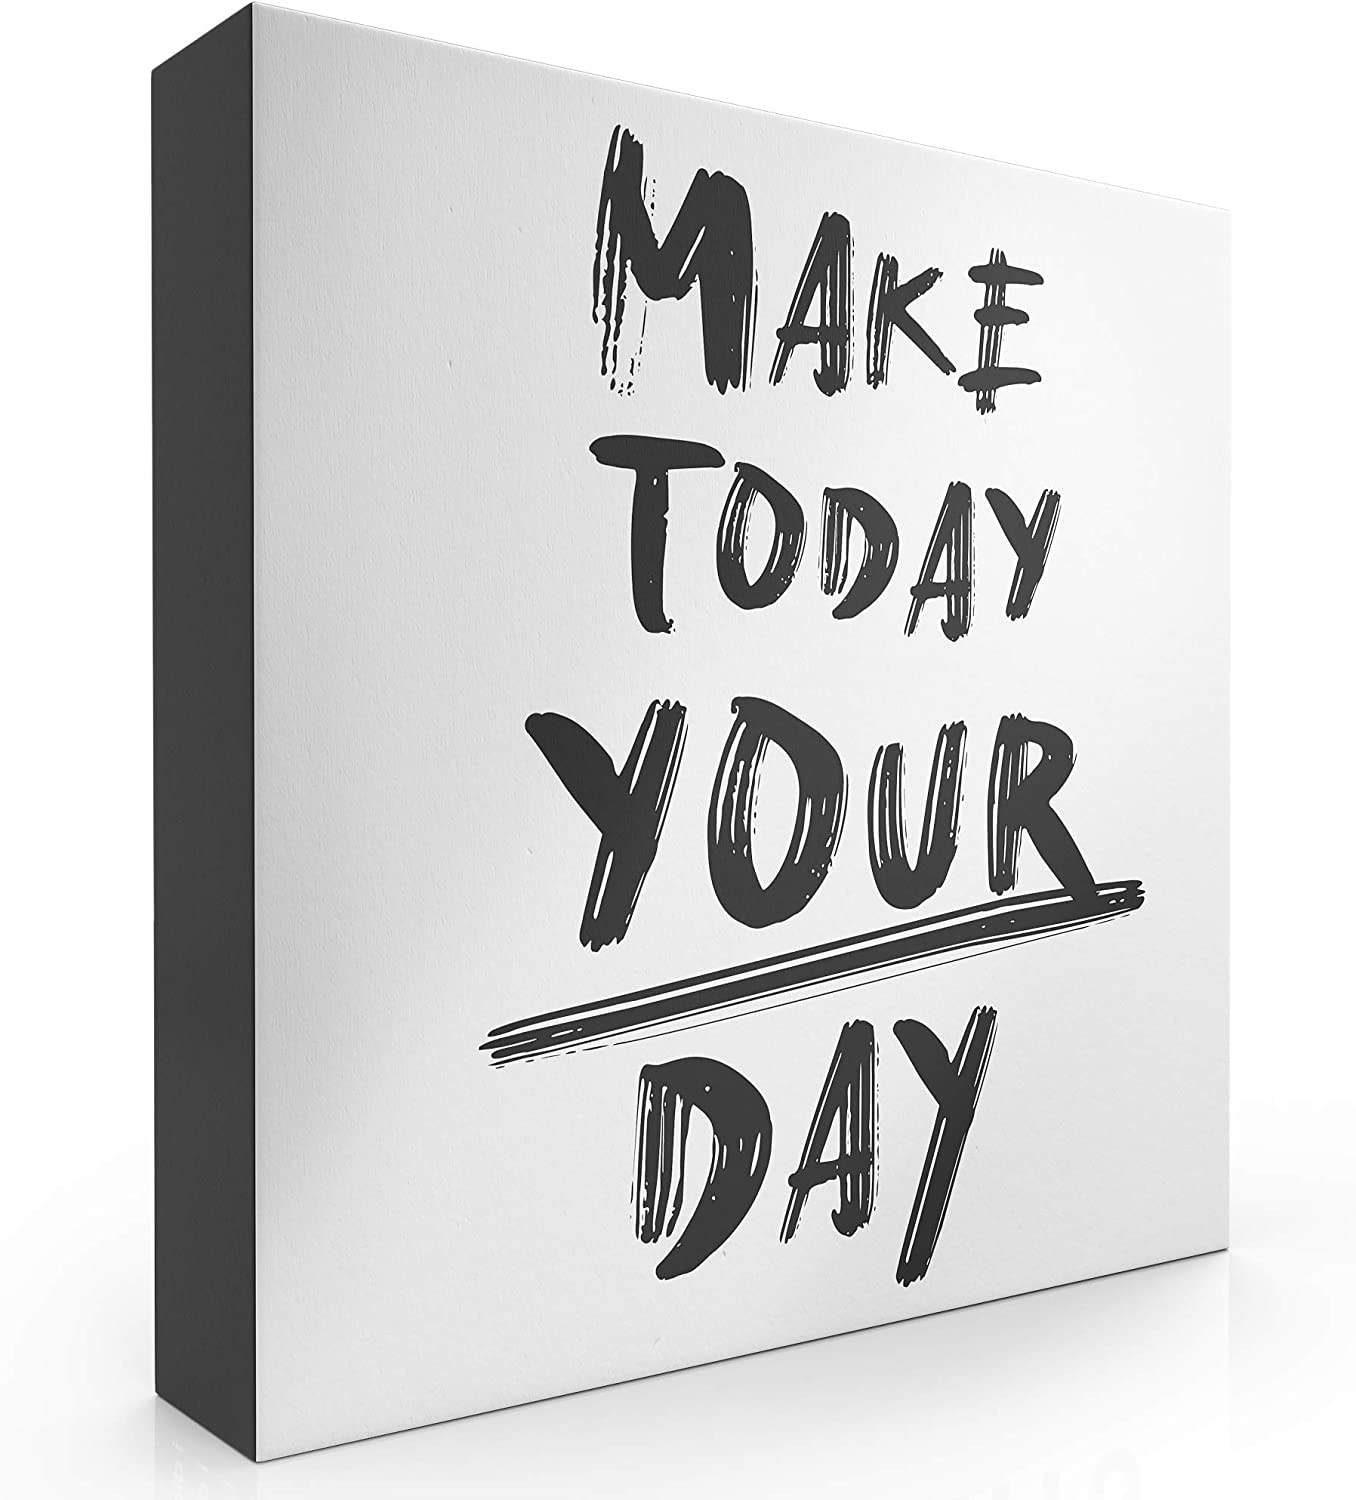 "Modern Market Make Today Your Day Wooden Box Sign Inspirational Motivational Quote Home Decor Sign with Sayings 8"" x 8"""